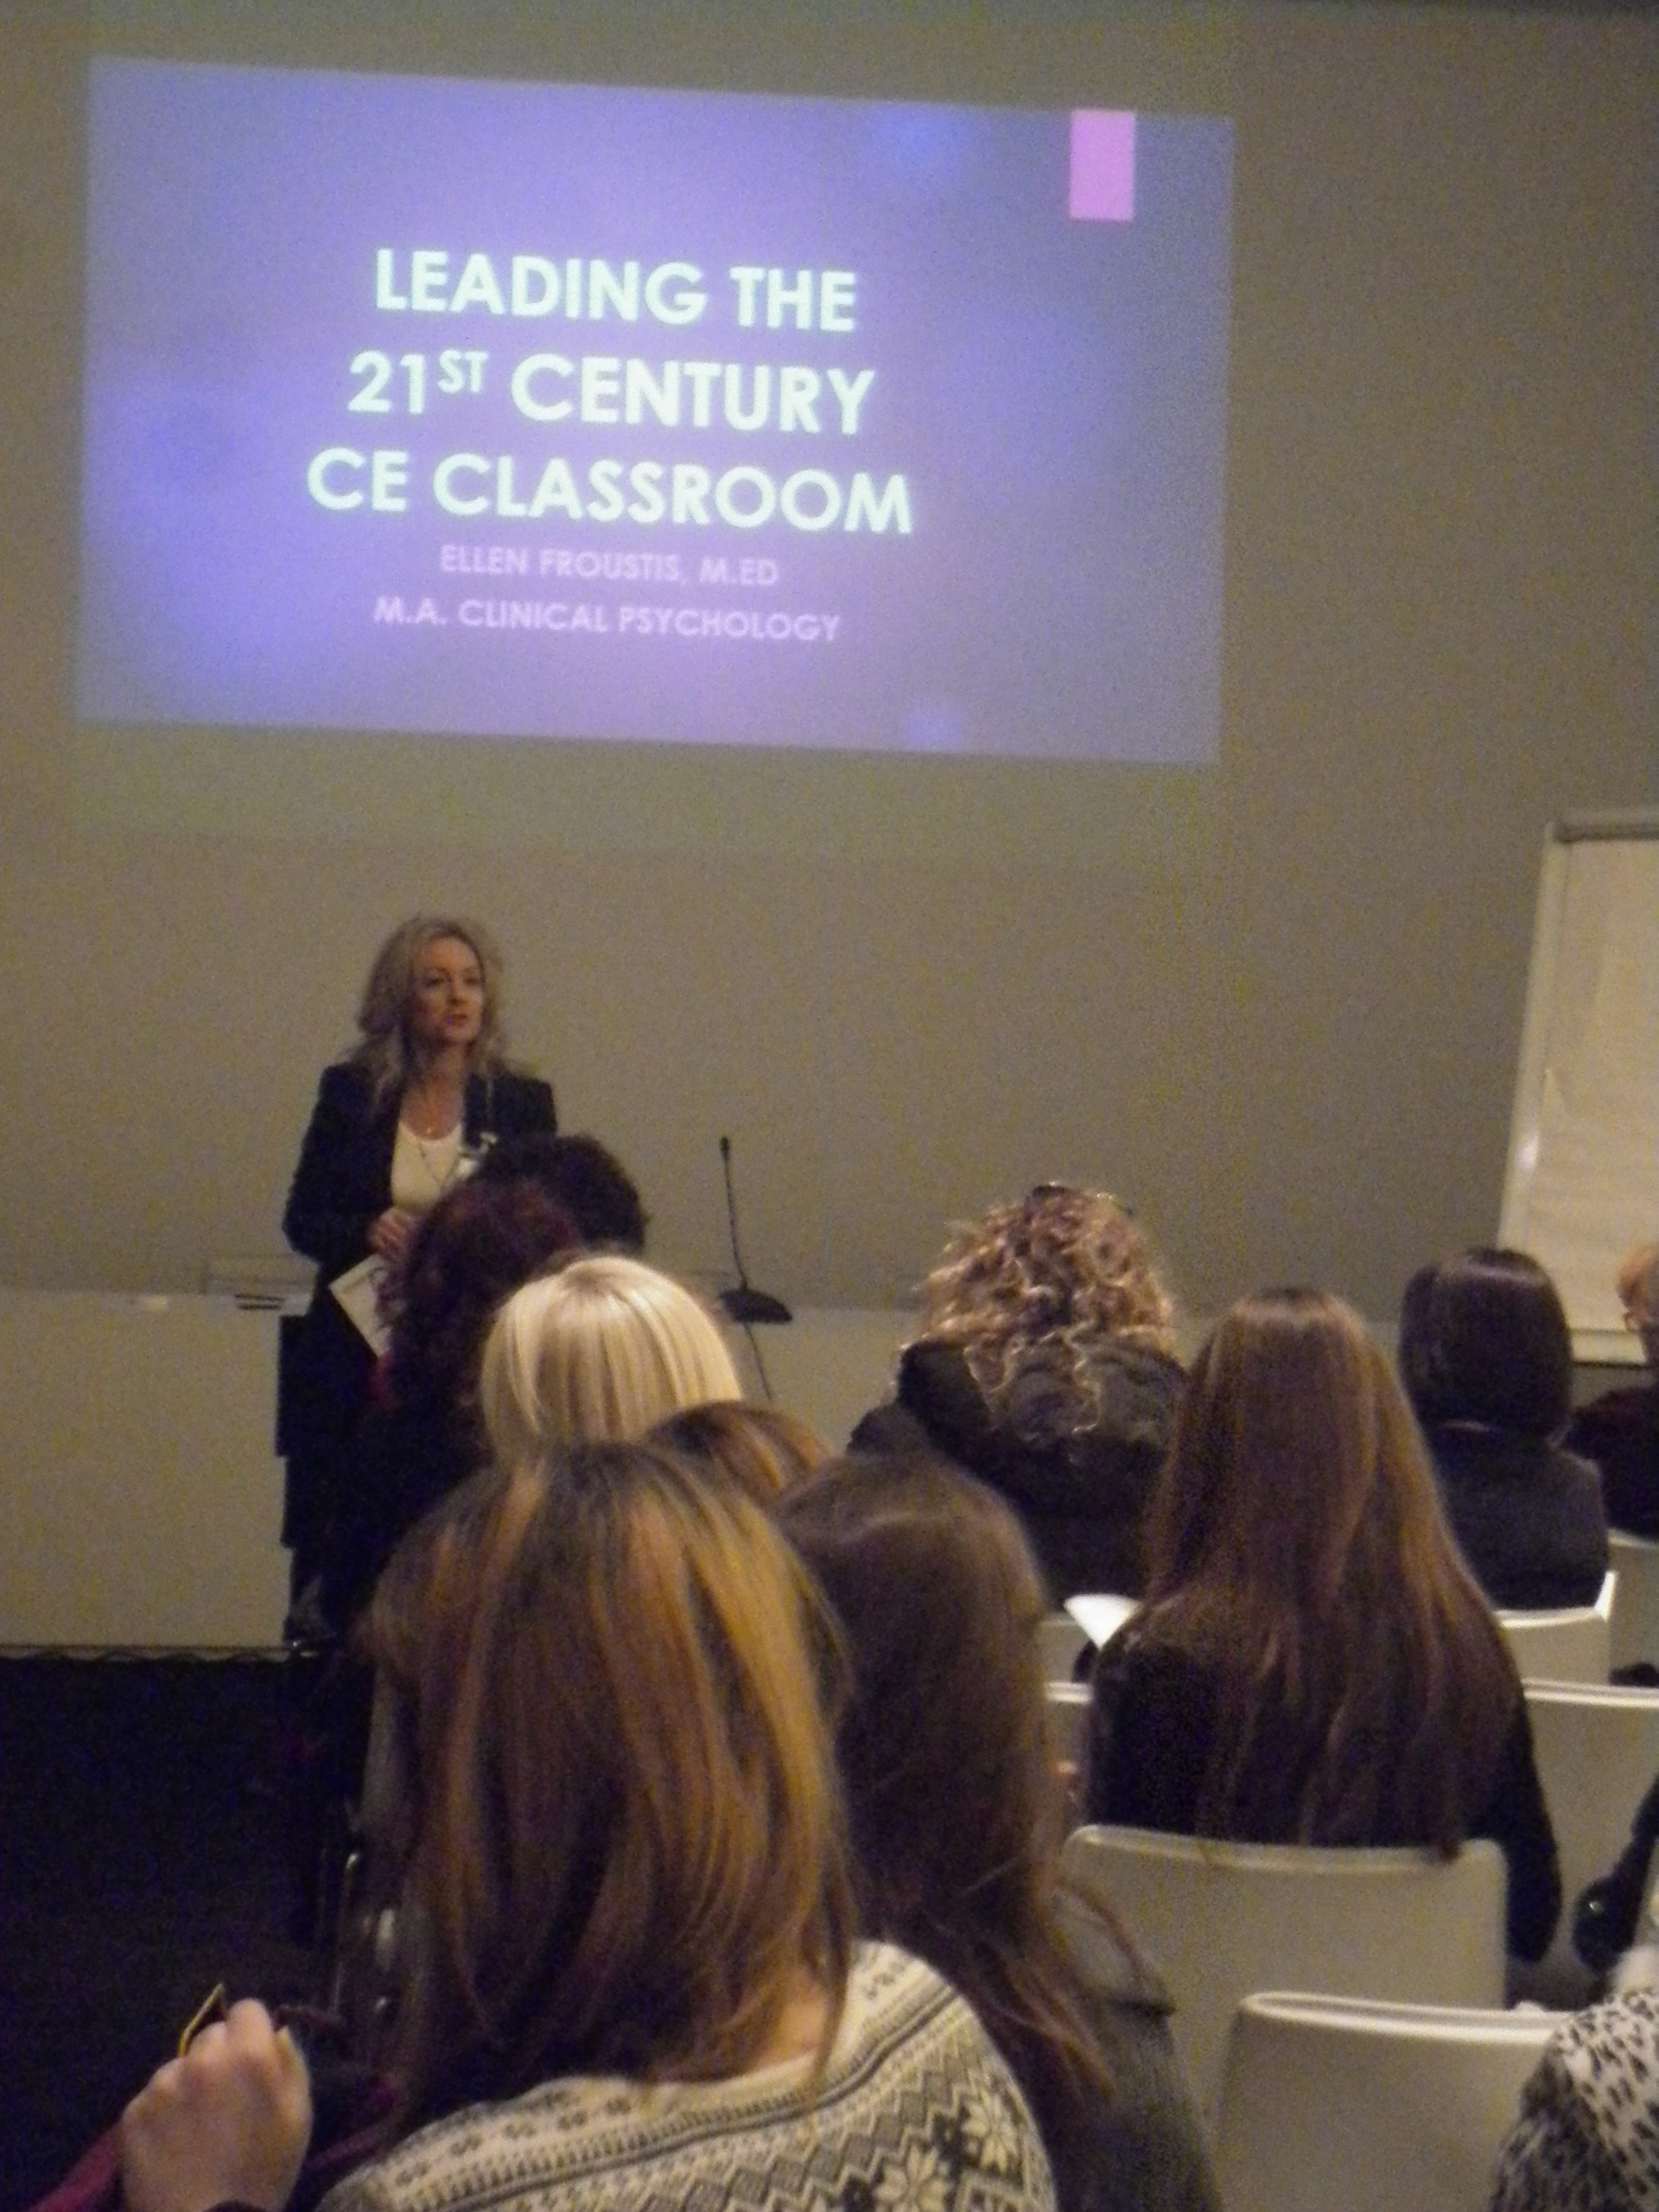 EIMAI FOUNDER, ELLEN FROUSTIS DISCUSSES LEADING THE 21ST CENTURY CASSROOM.JPG